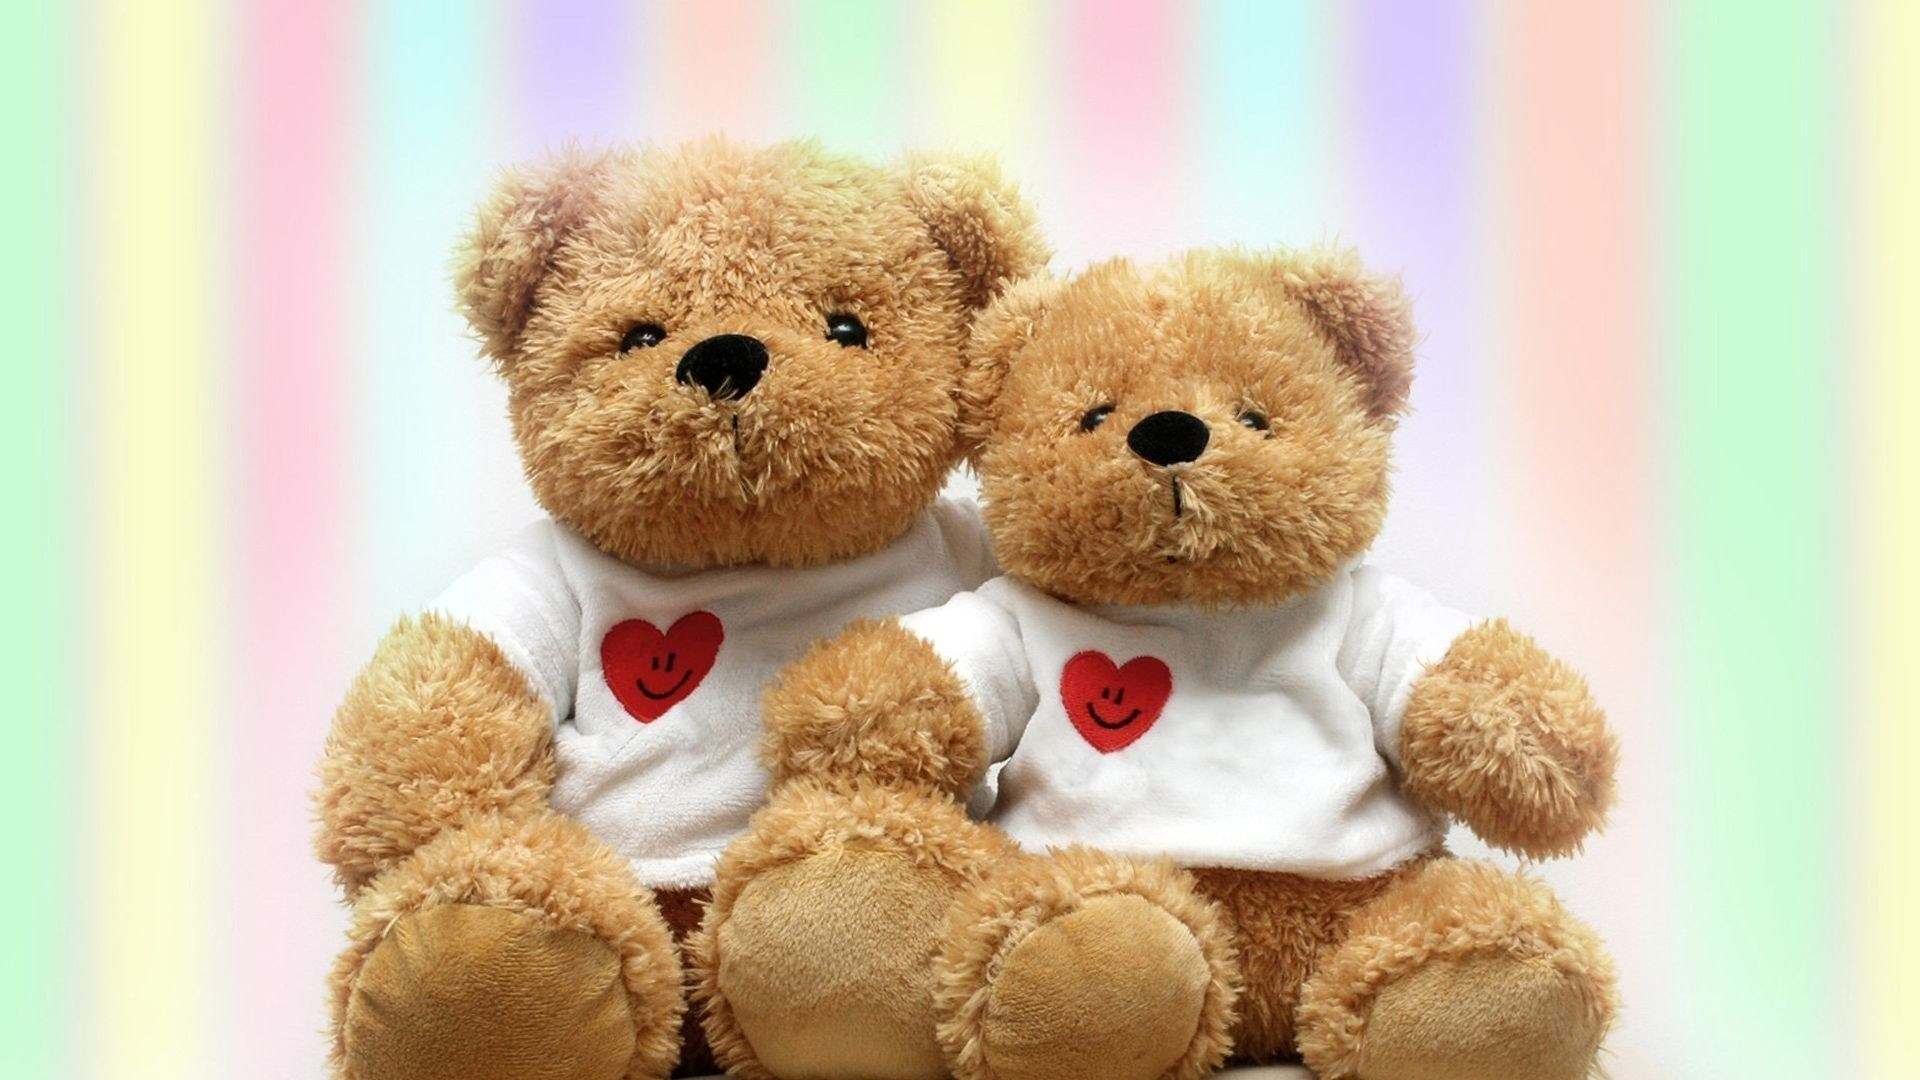 Download Wallpaper 1920x1080 Teddy Bears, Couple, Toys